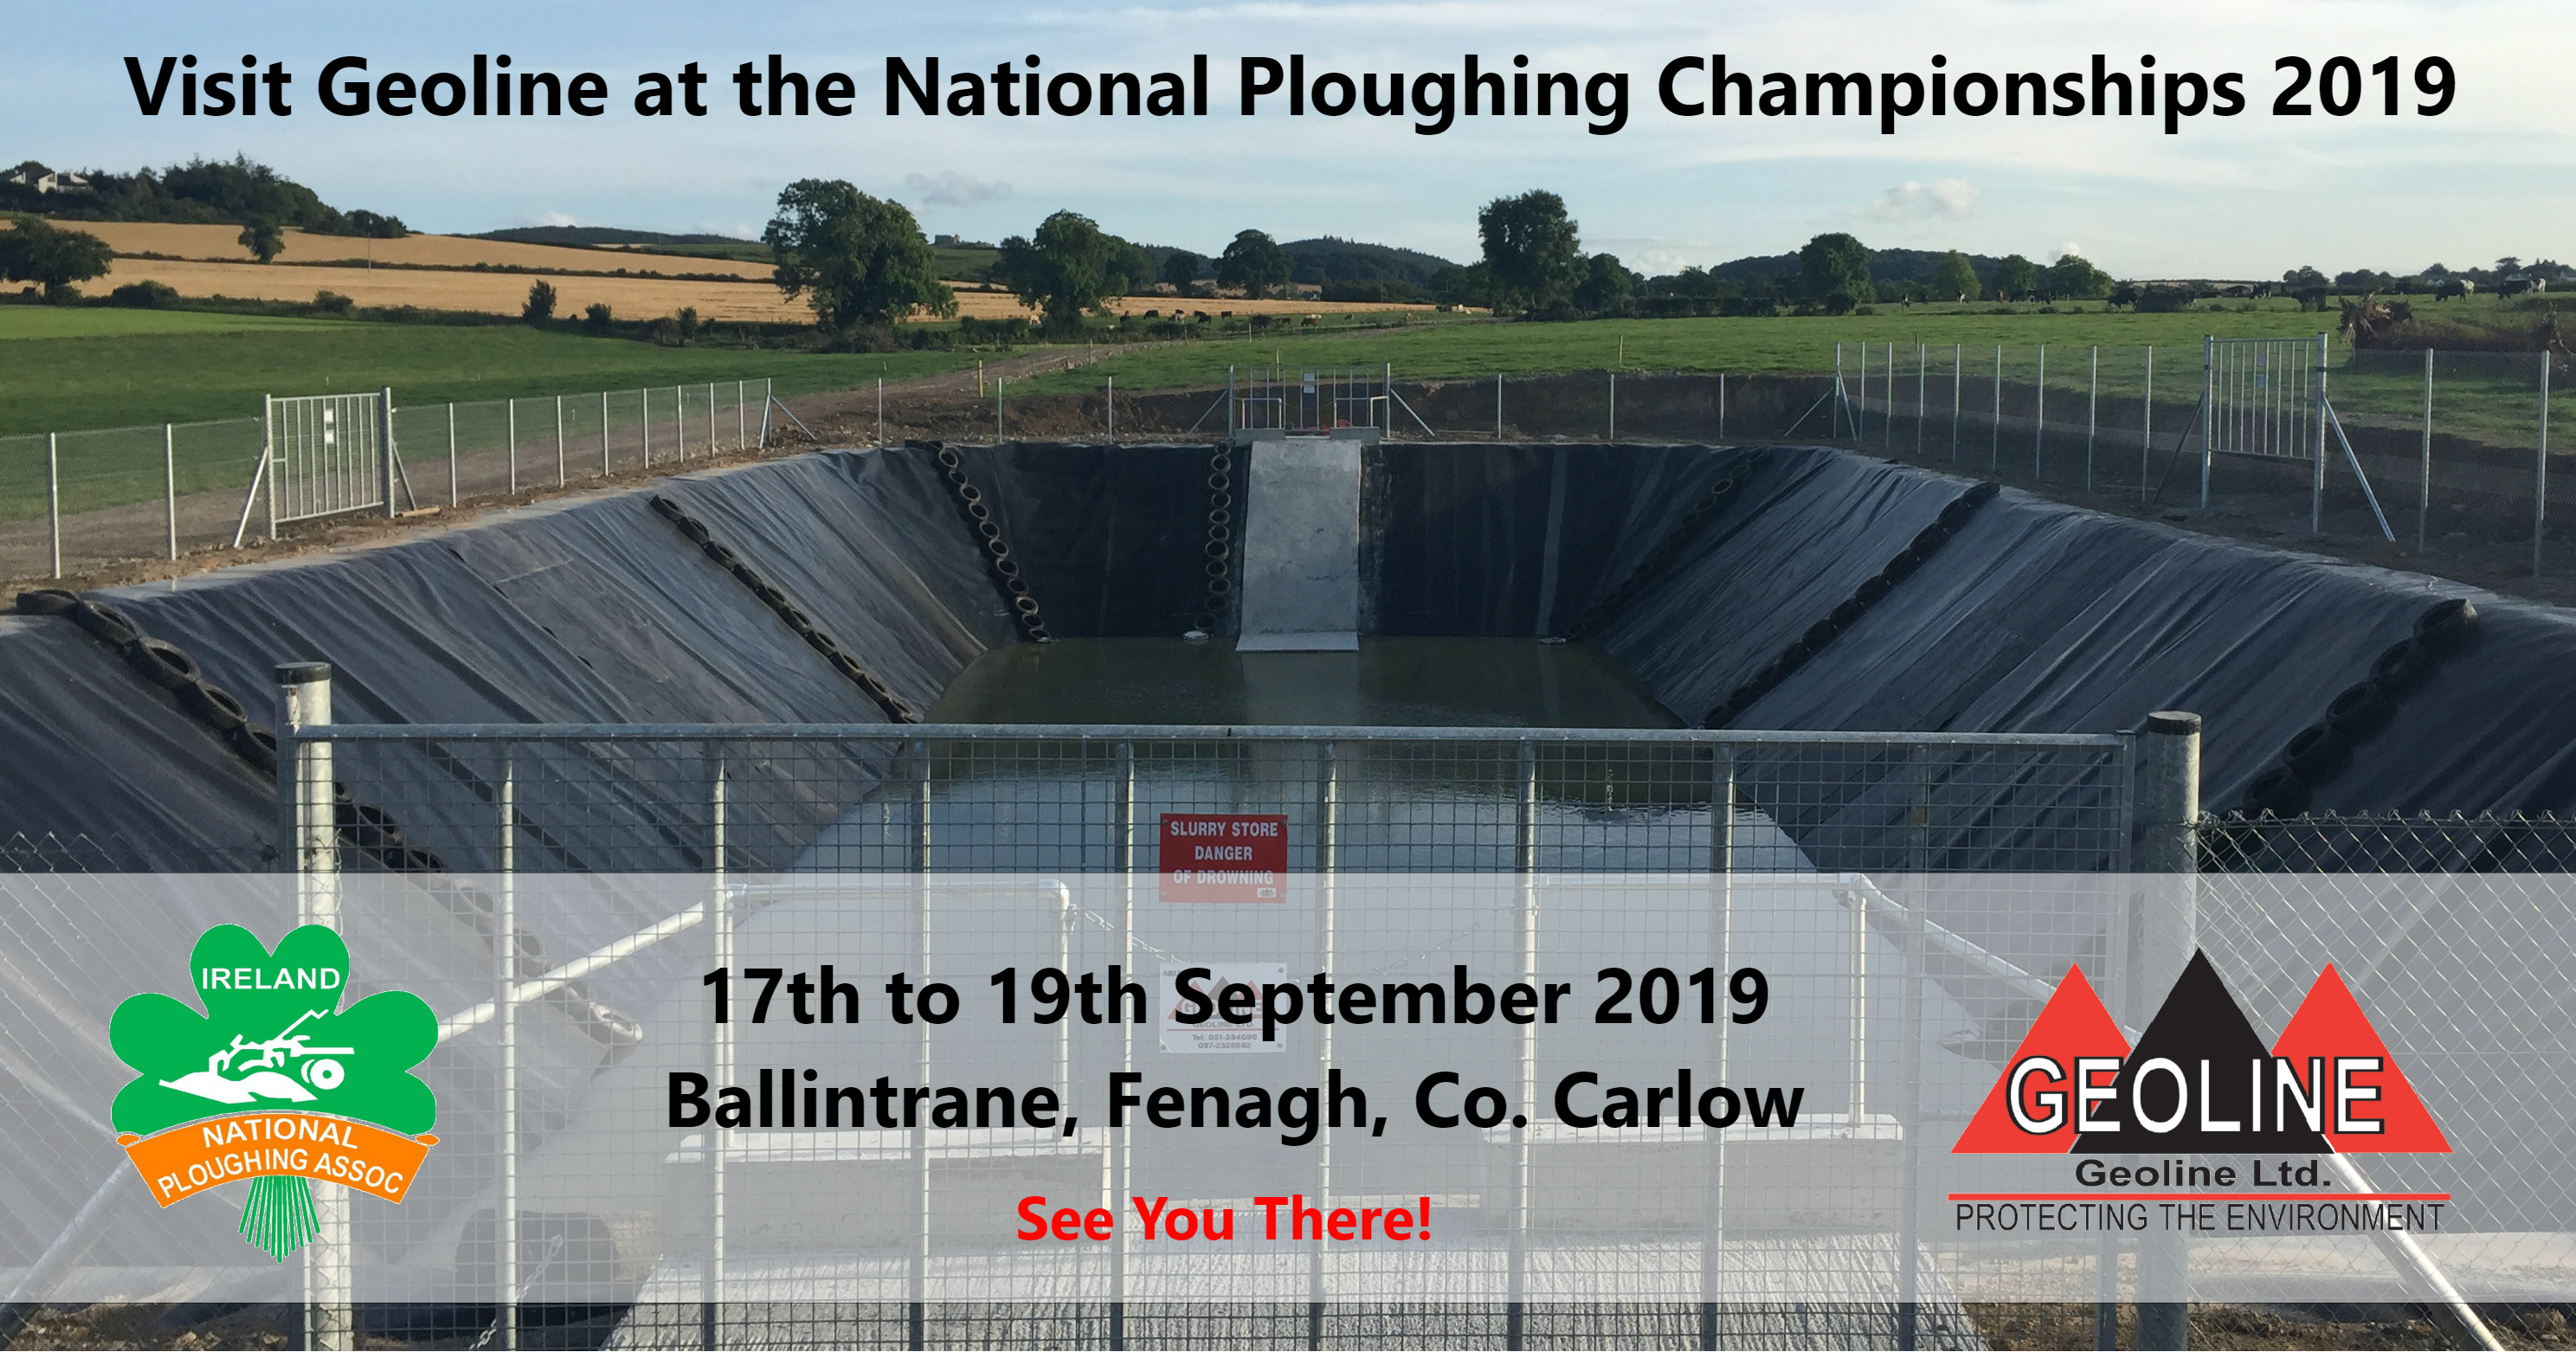 Geoline Will Be Exhibiting At The National Ploughing Championships 2019